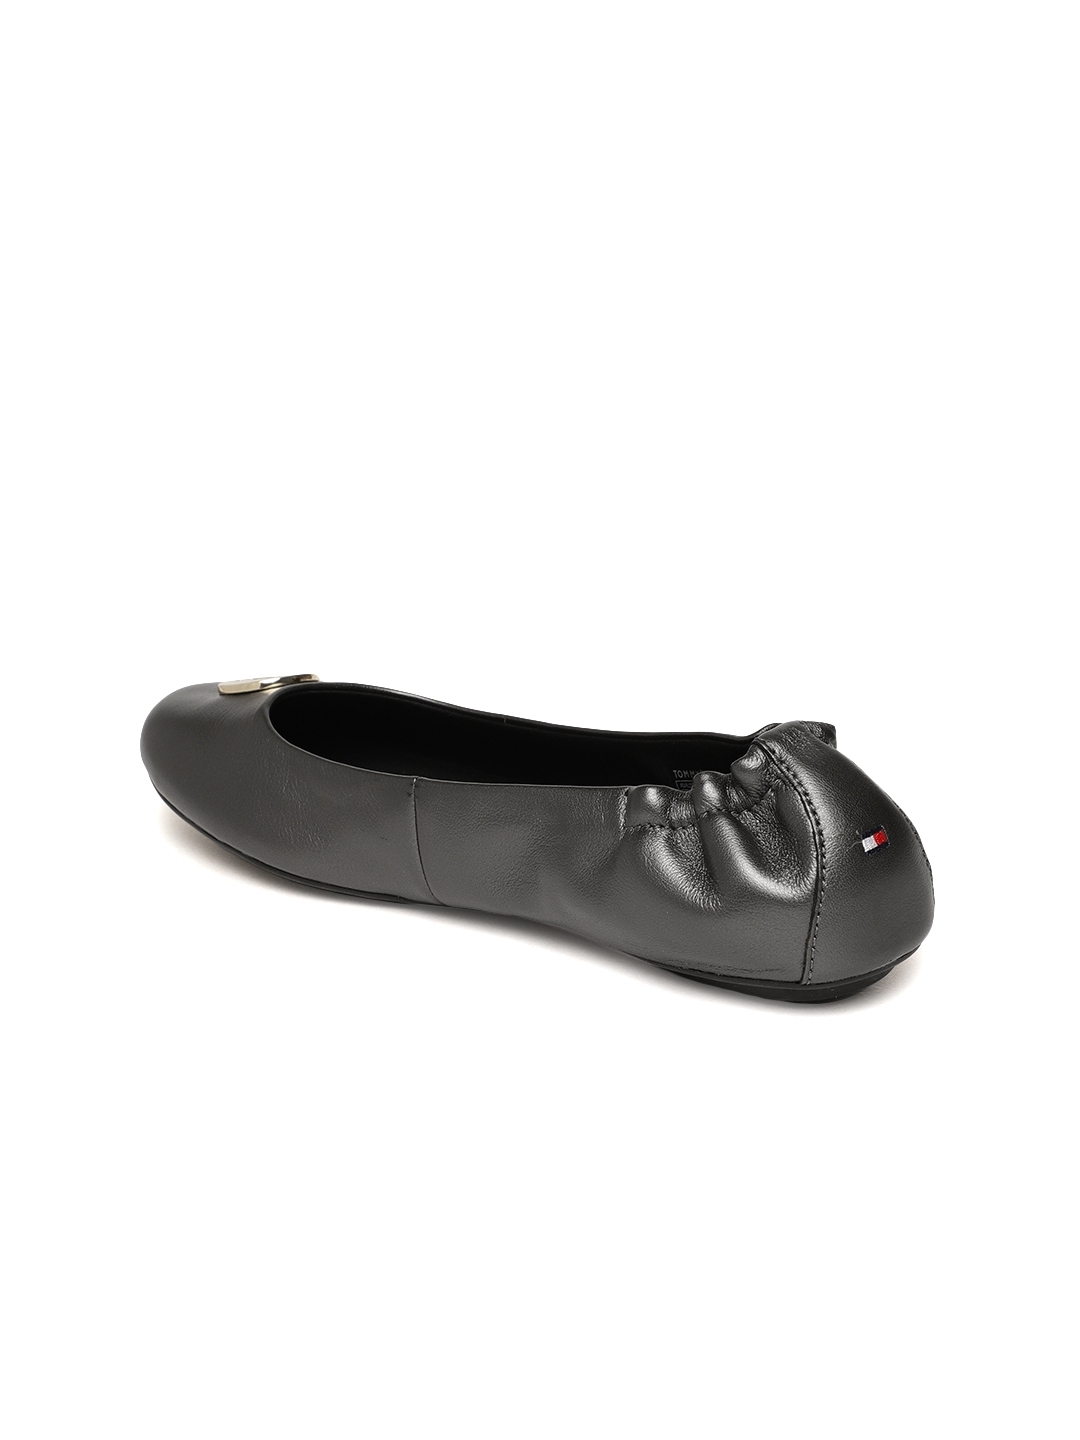 677b5e44d Buy Tommy Hilfiger Women Charcoal Solid Pearlized Leather Ballerinas ...